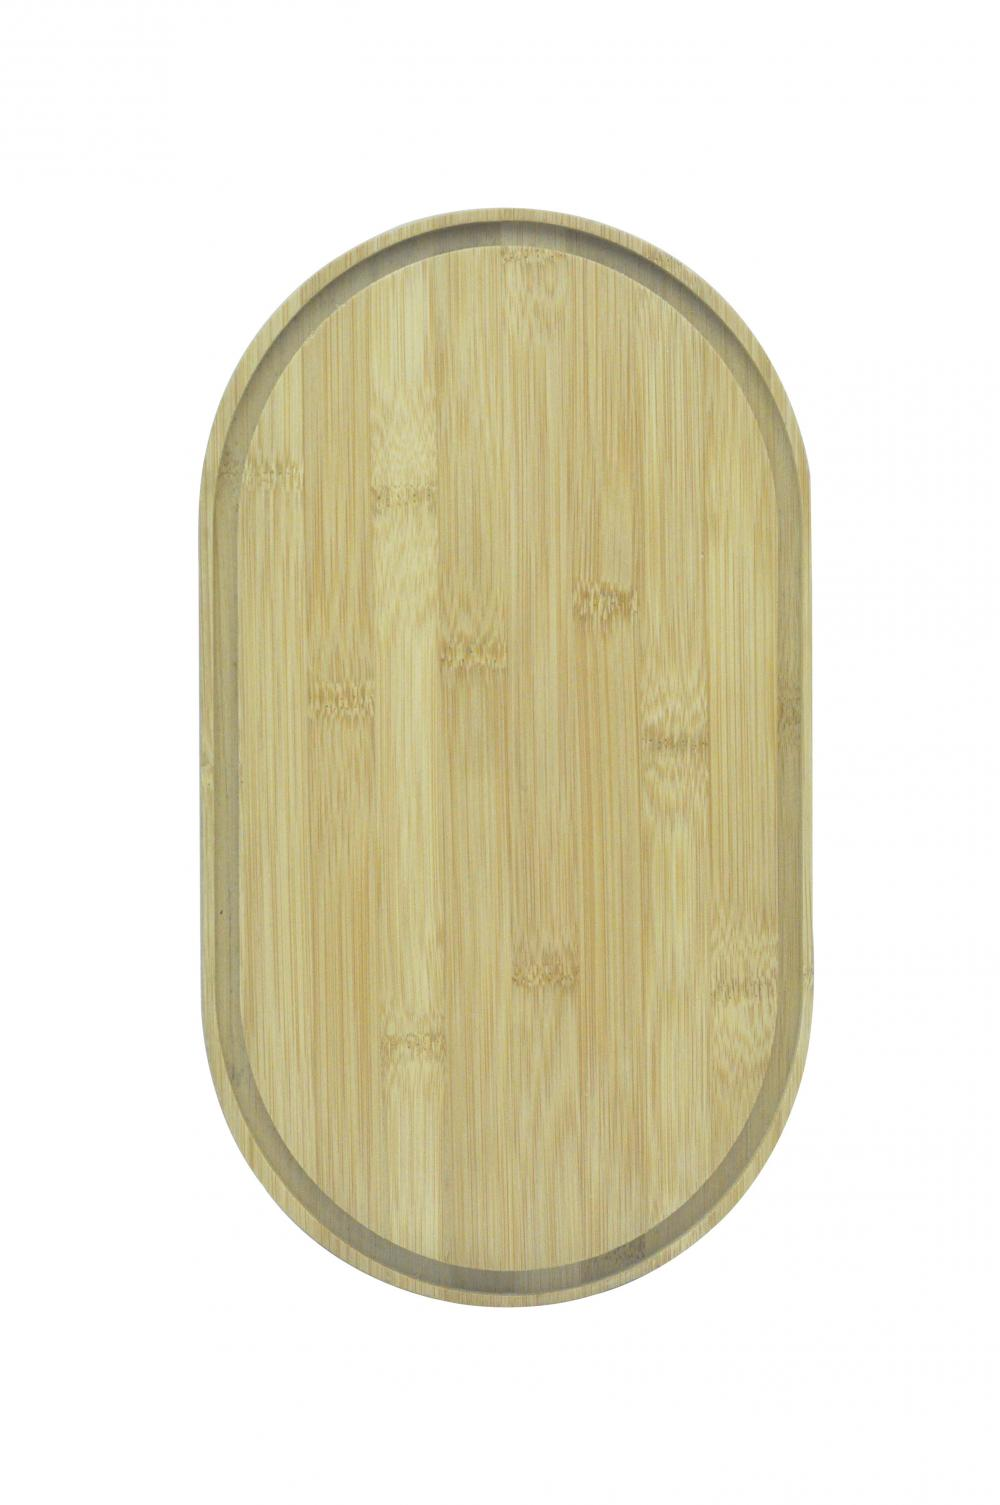 Serving Cutting Board